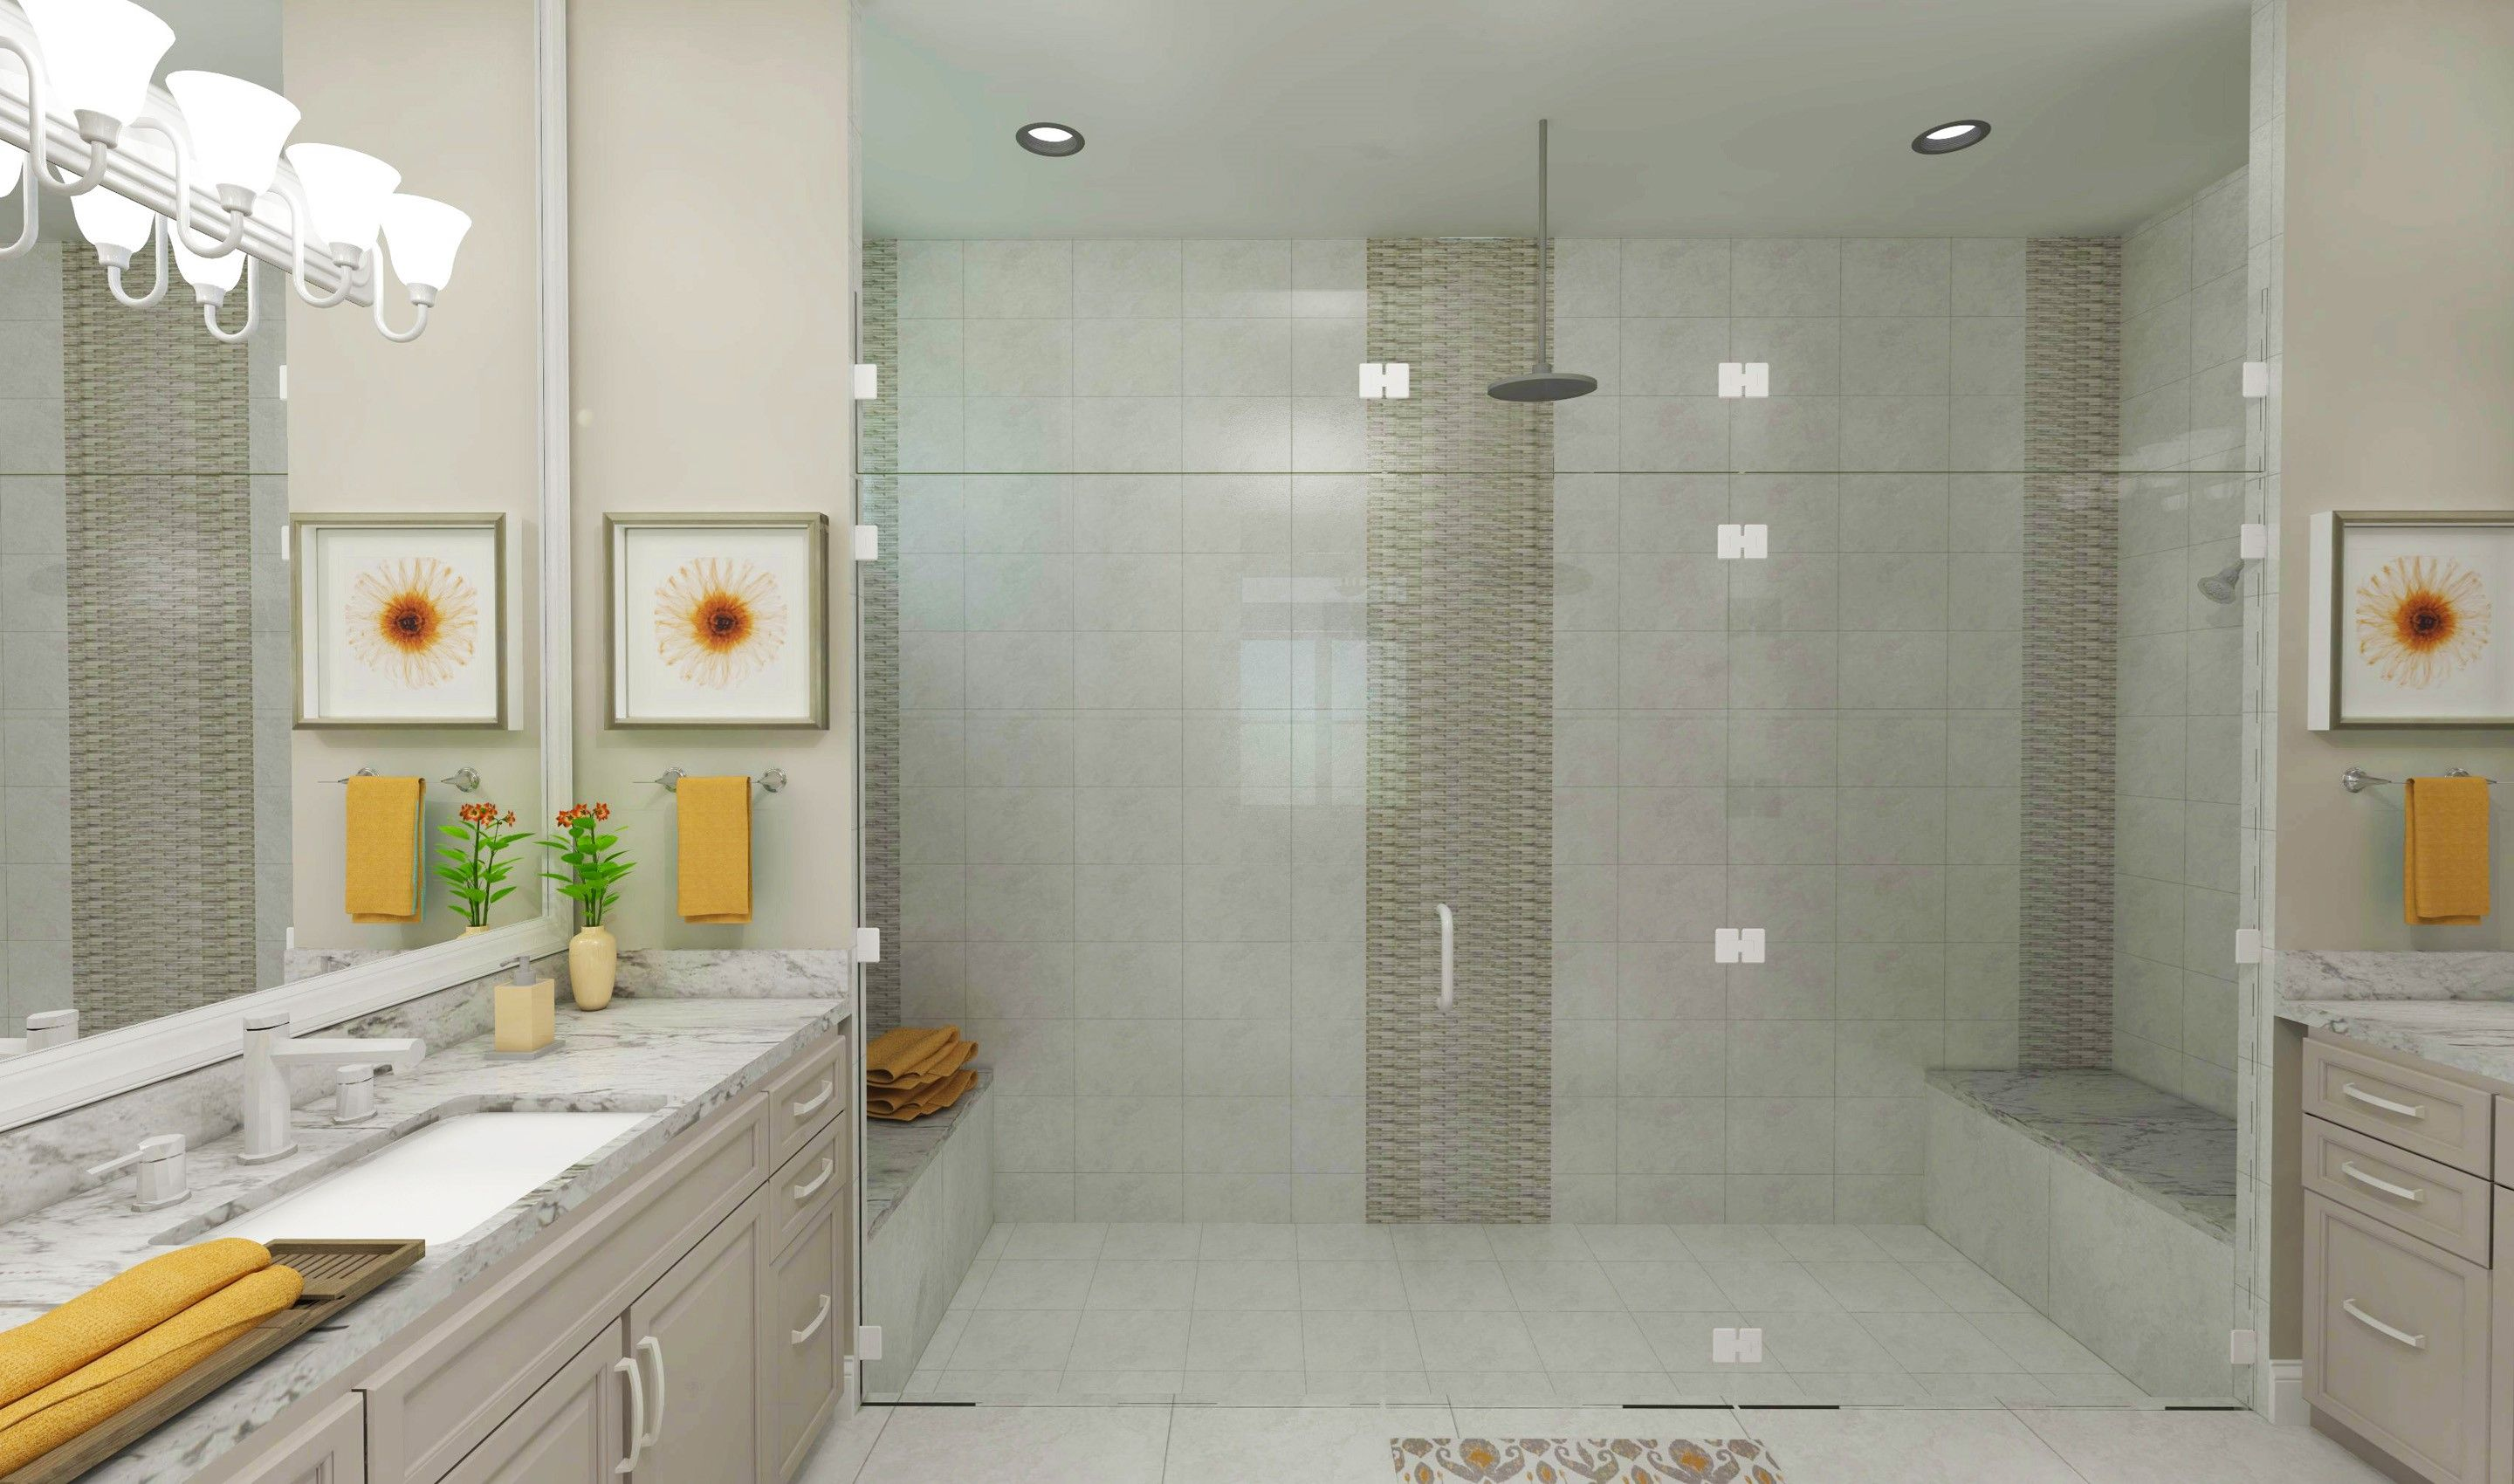 Bathroom featured in the Coral By K. Hovnanian's® Four Seasons in Broward County-Ft. Lauderdale, FL